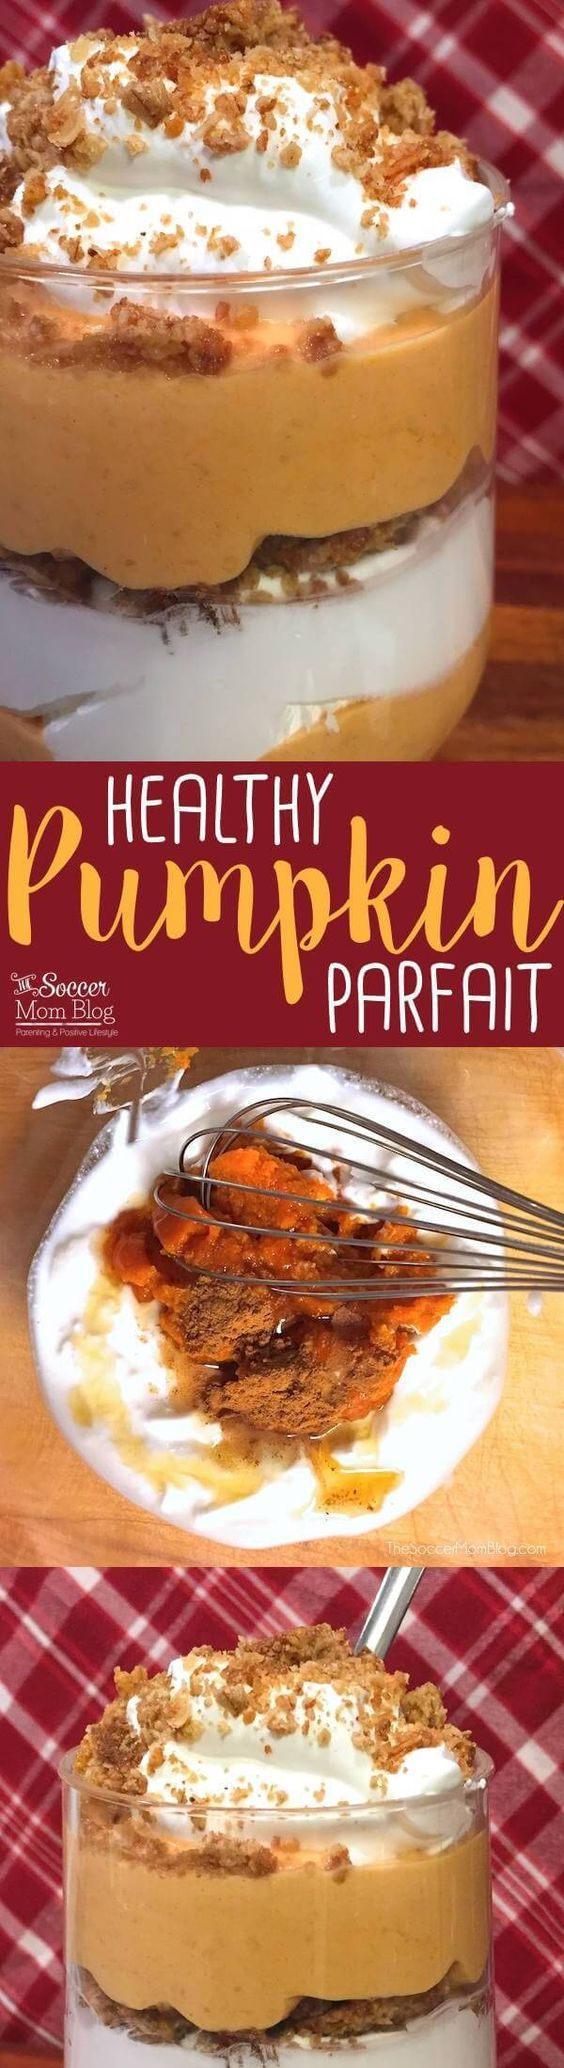 Tastes like pumpkin pie in a glass...and it's good for you! This Greek Yogurt Pumpkin Parfait recipe is high in protein calcium and whole grains! A luscious (and healthy!) snack or dessert perfect for Fall and Thanksgiving.